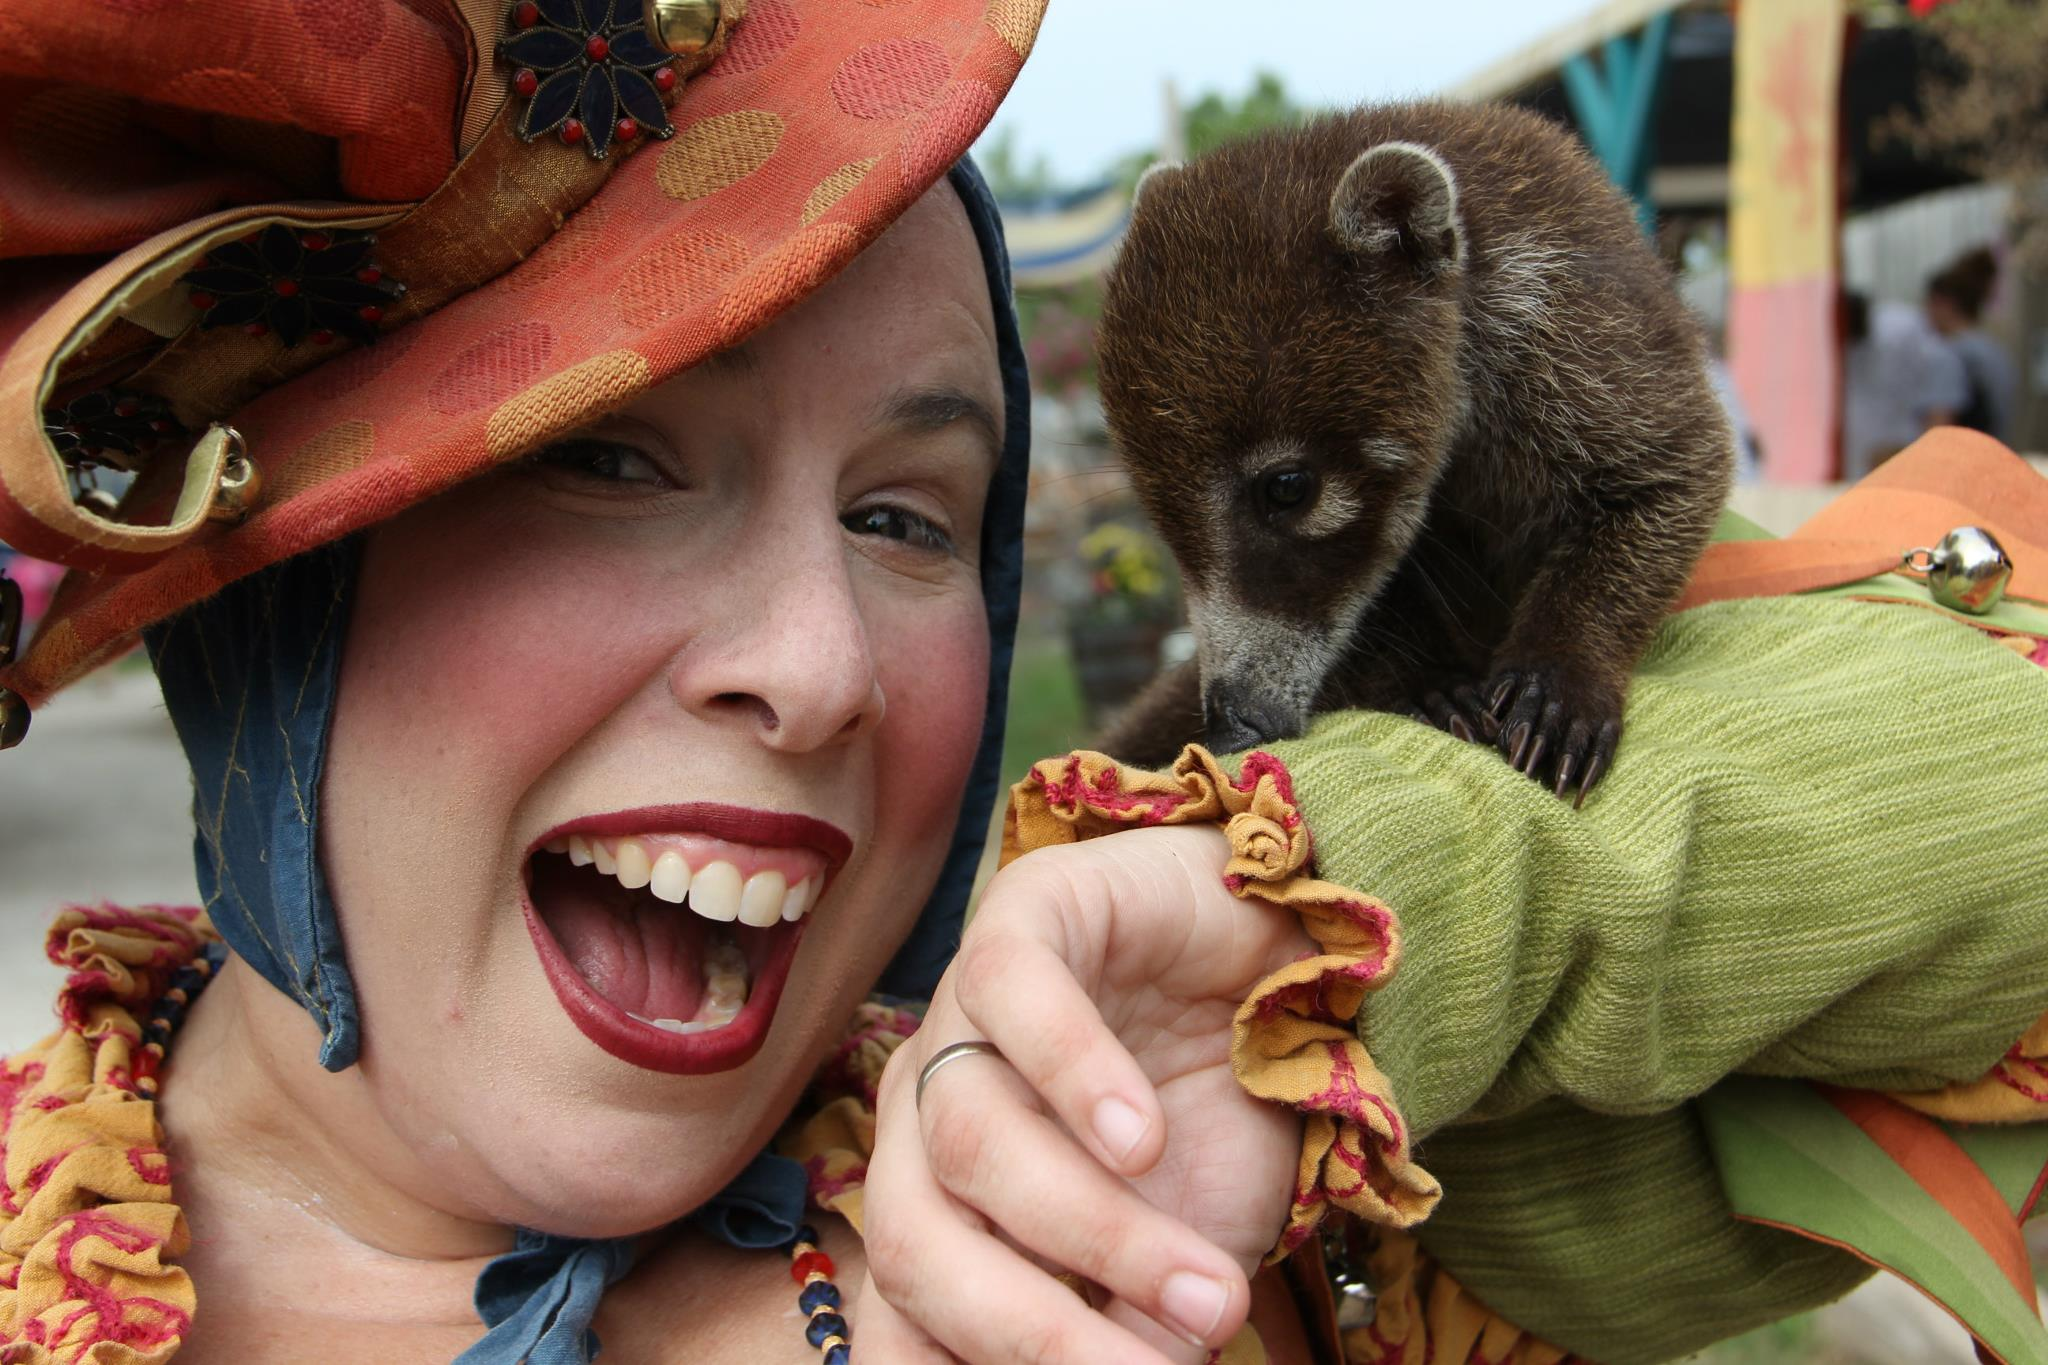 Jane with Myrtle the Coati